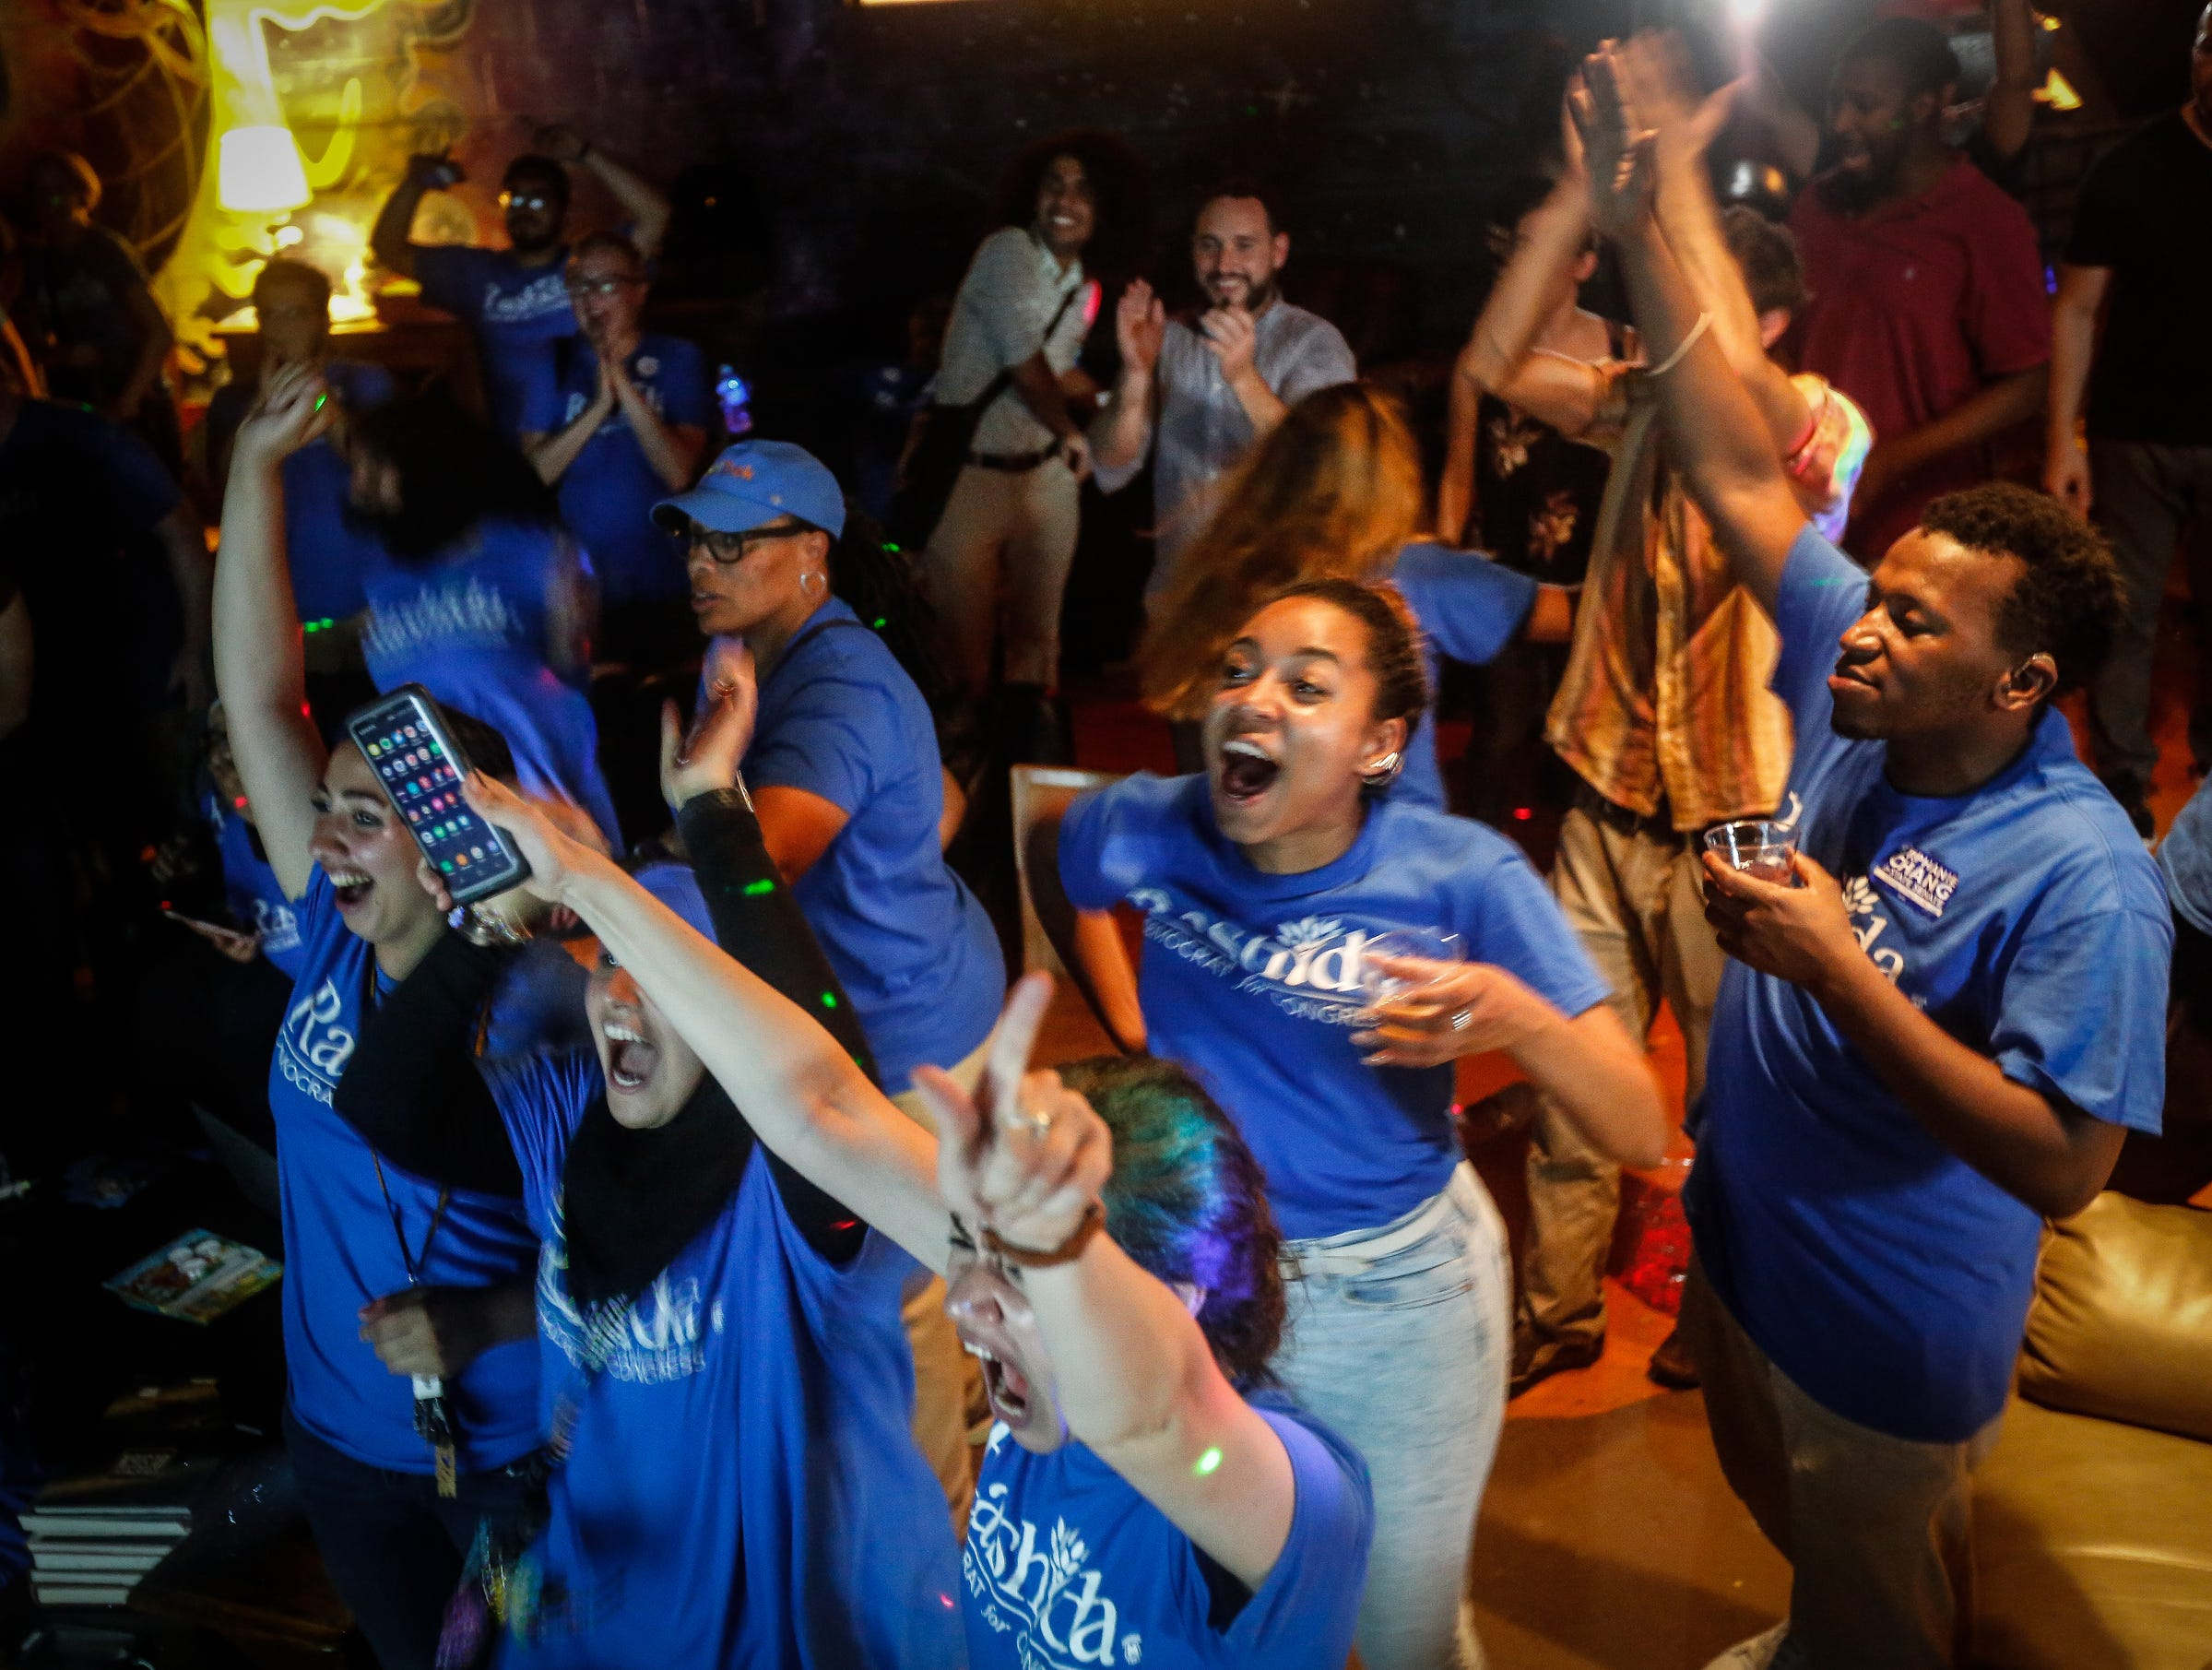 Supporters of Rashida Tlaib celebrate after the Associated Press called Tlaib's race in her favor at Tlaib's election night party in Northwest Detroit on Aug. 7, 2018.